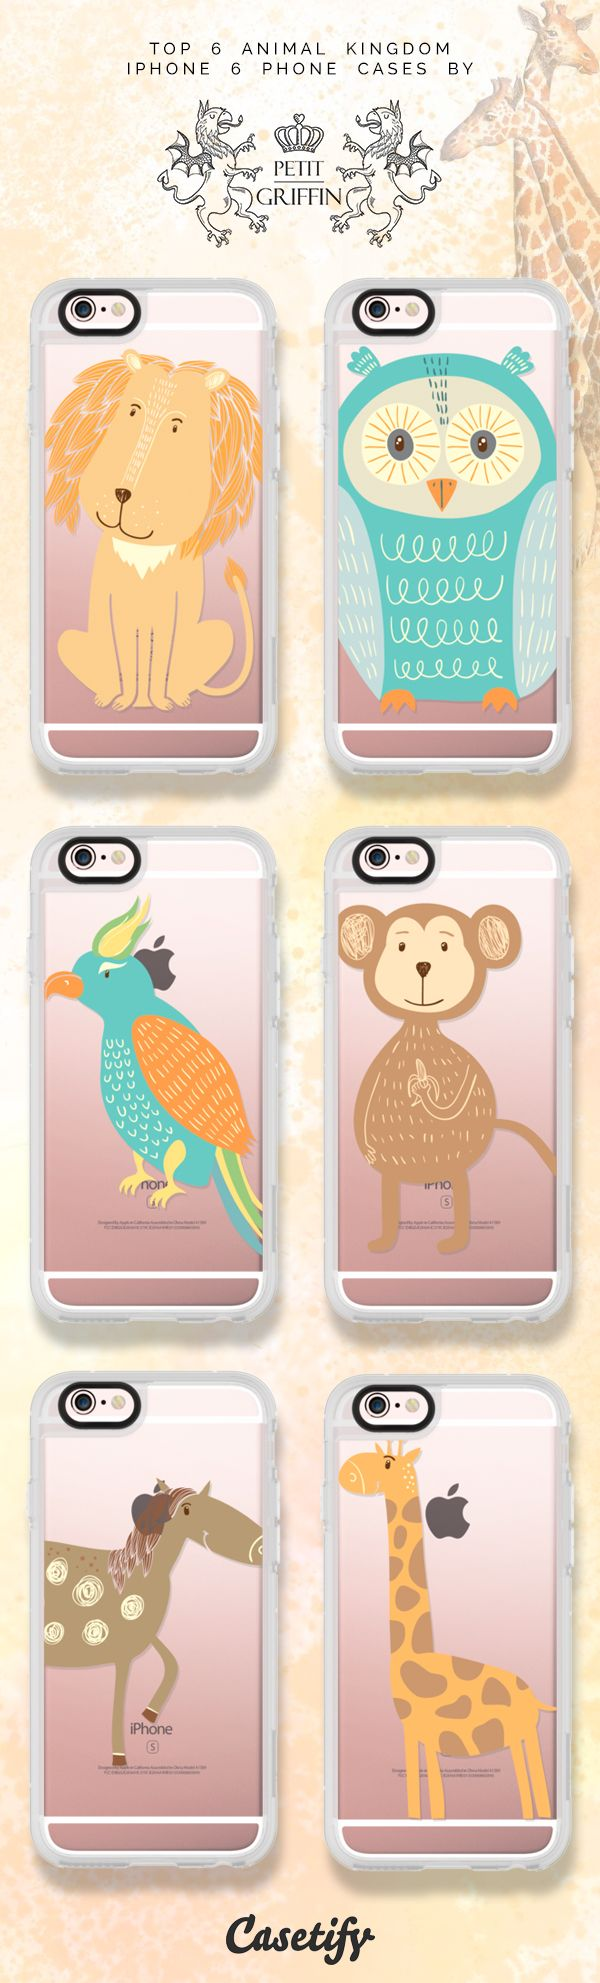 6 most popular animal iPhone 6s phone case designs by Petit Griffin | Click through to see more iPhone phone case ideas >>> https://www.casetify.com/artworks/8AykCEivoD #lion | @casetify